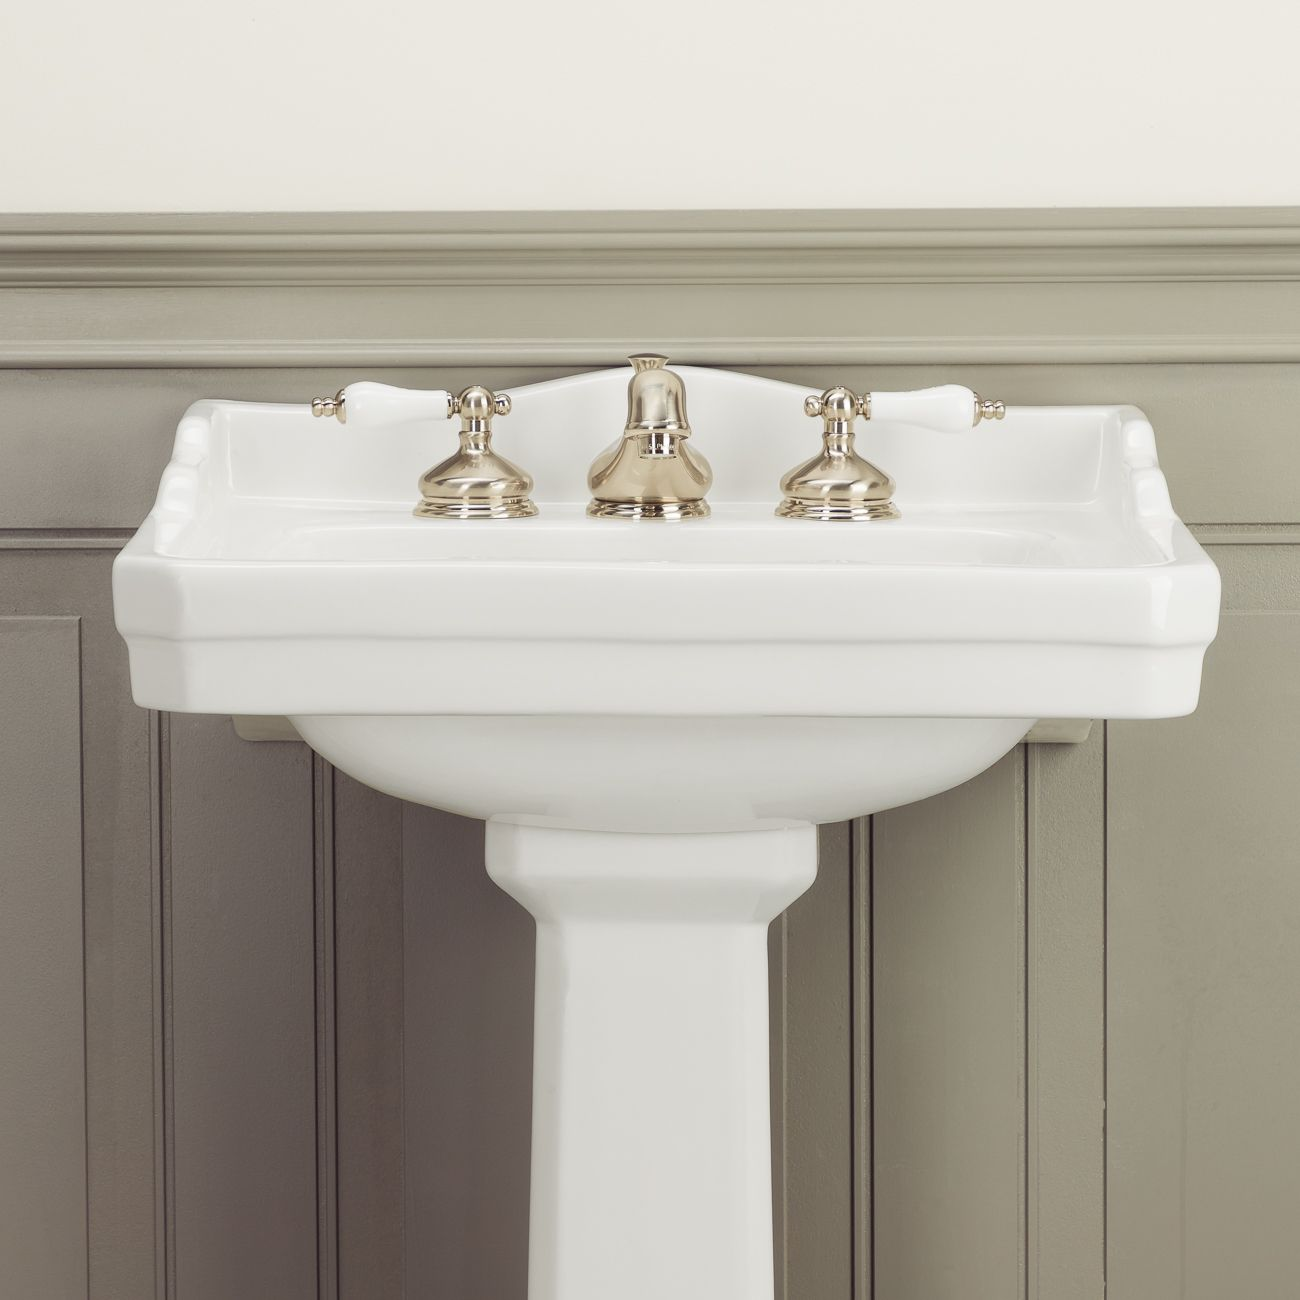 We Re Very Excited To Announce The Release Of Our New Collection Of Randolph Morris Pedestal Sinks Pictures Is The An Pedestal Sink Sink Pedestal Sink Storage